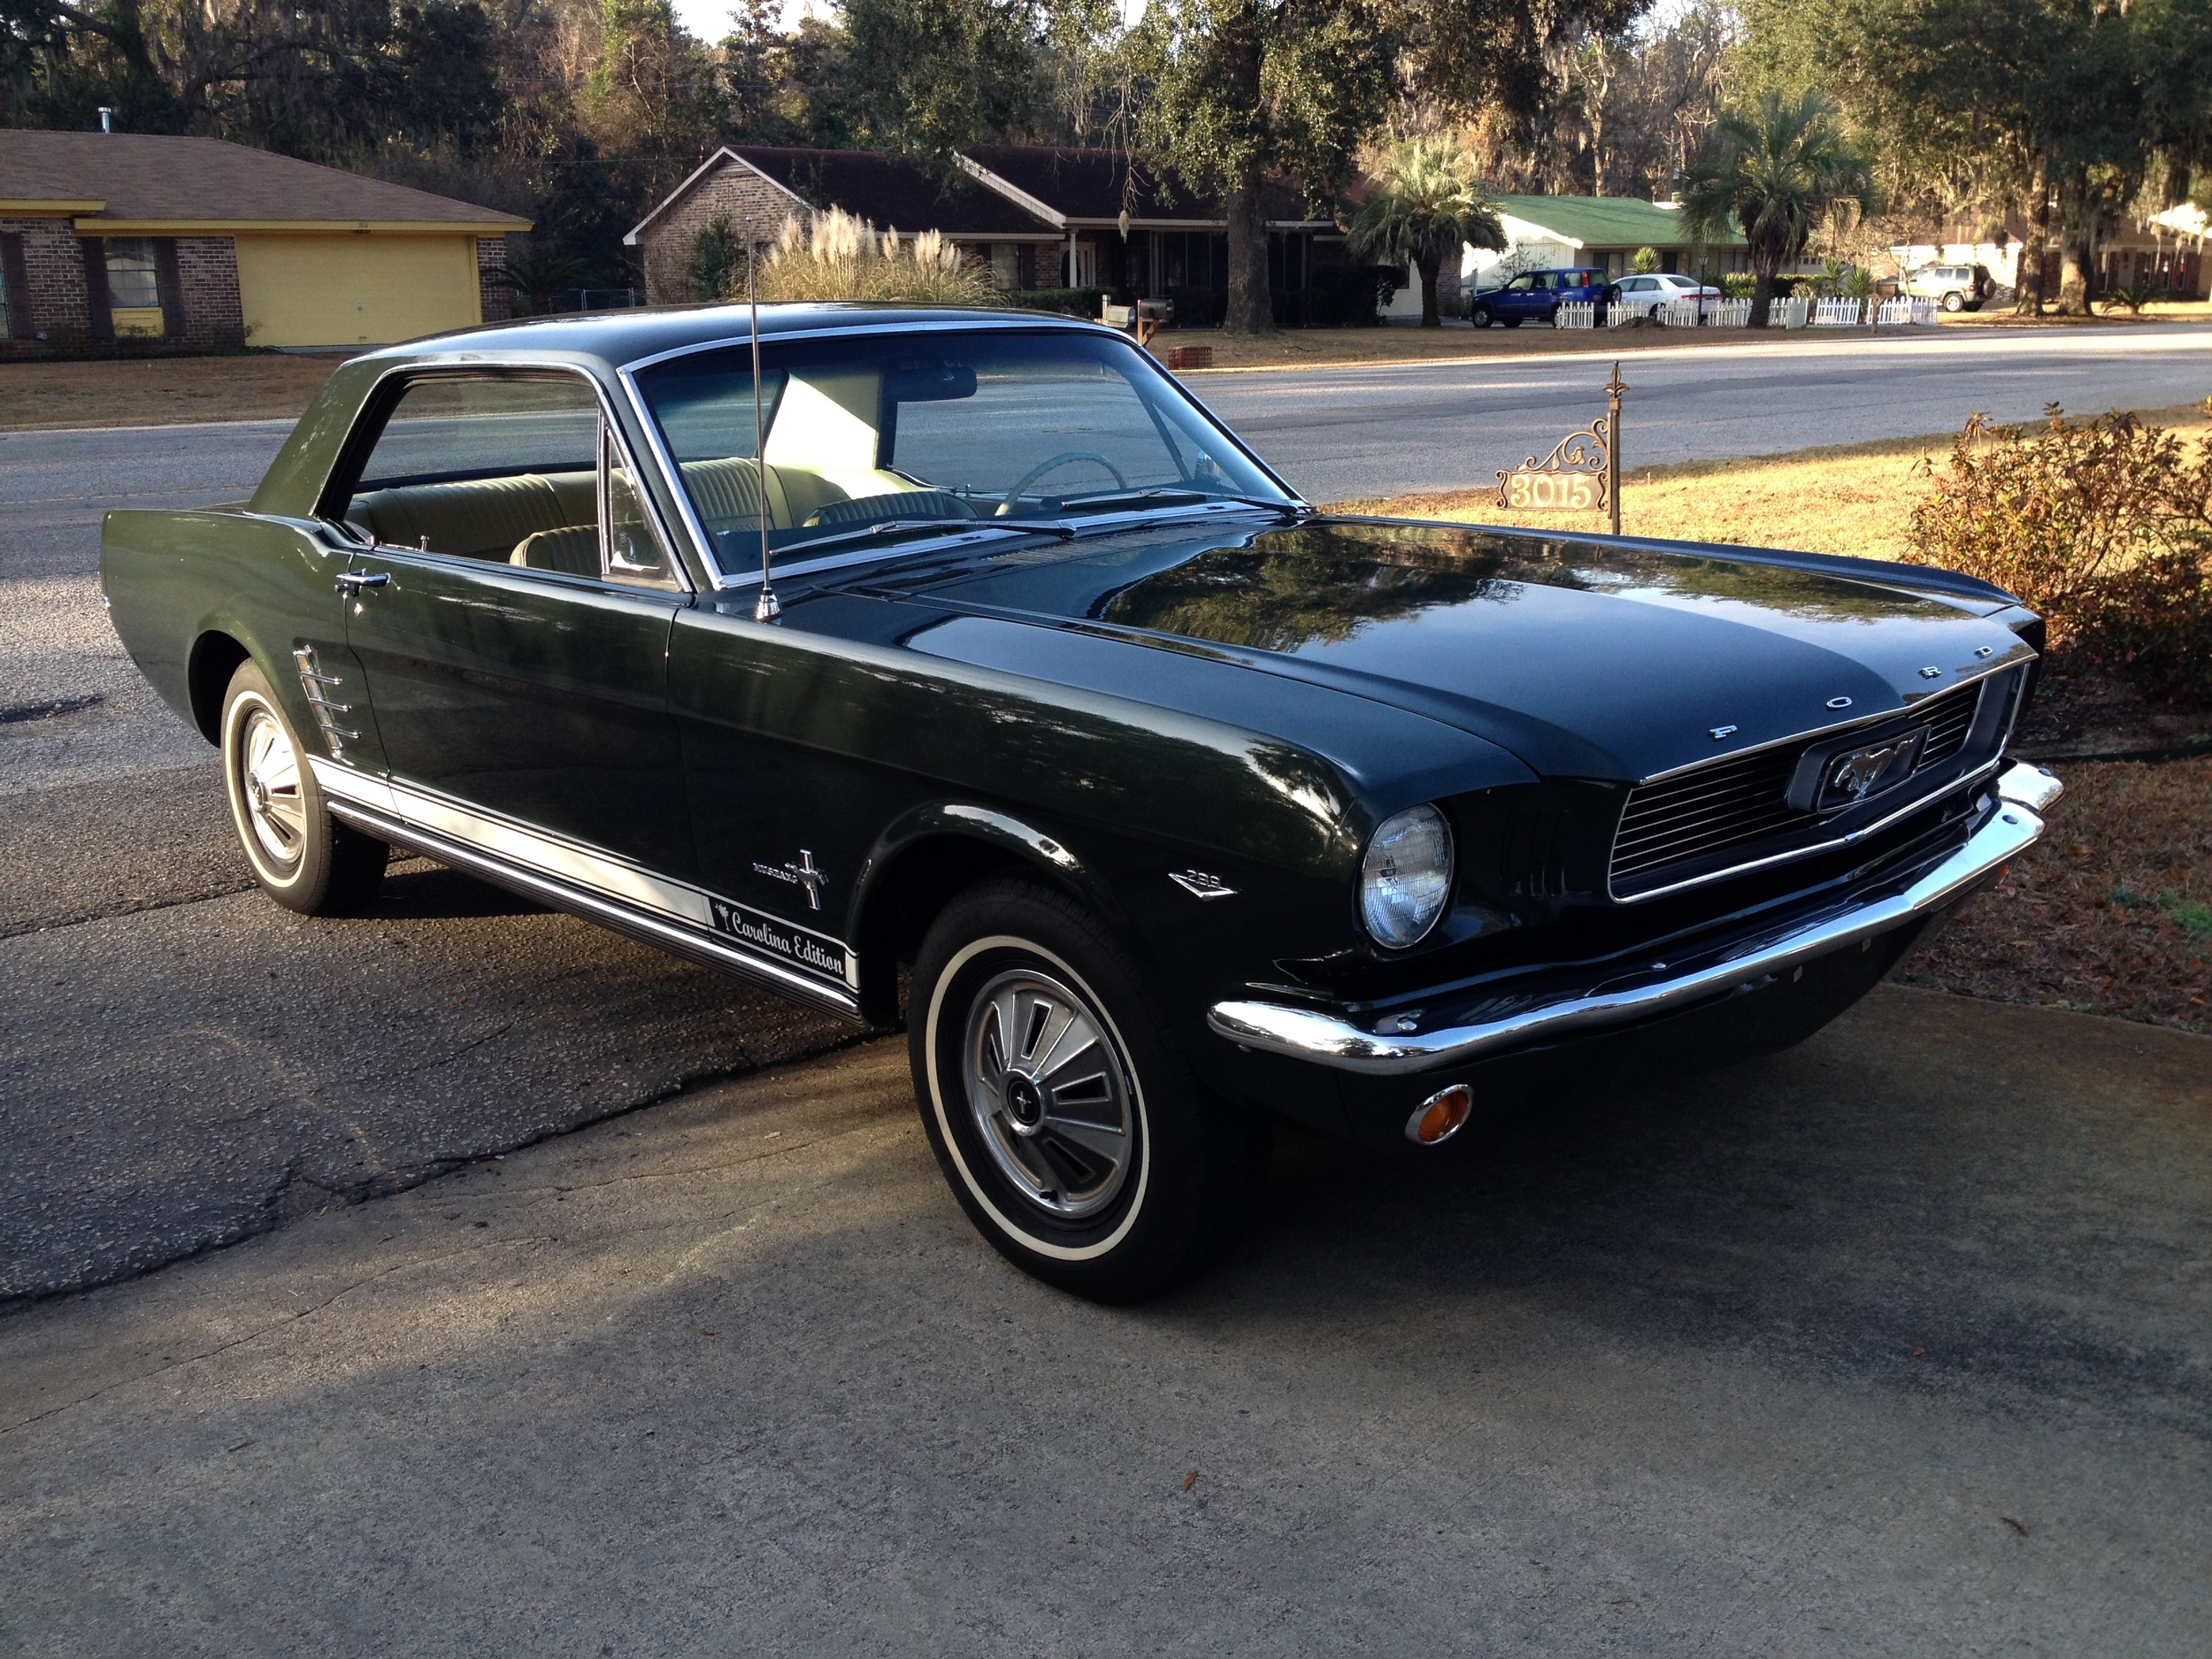 Bill Perry's 1966 Mustang, 289